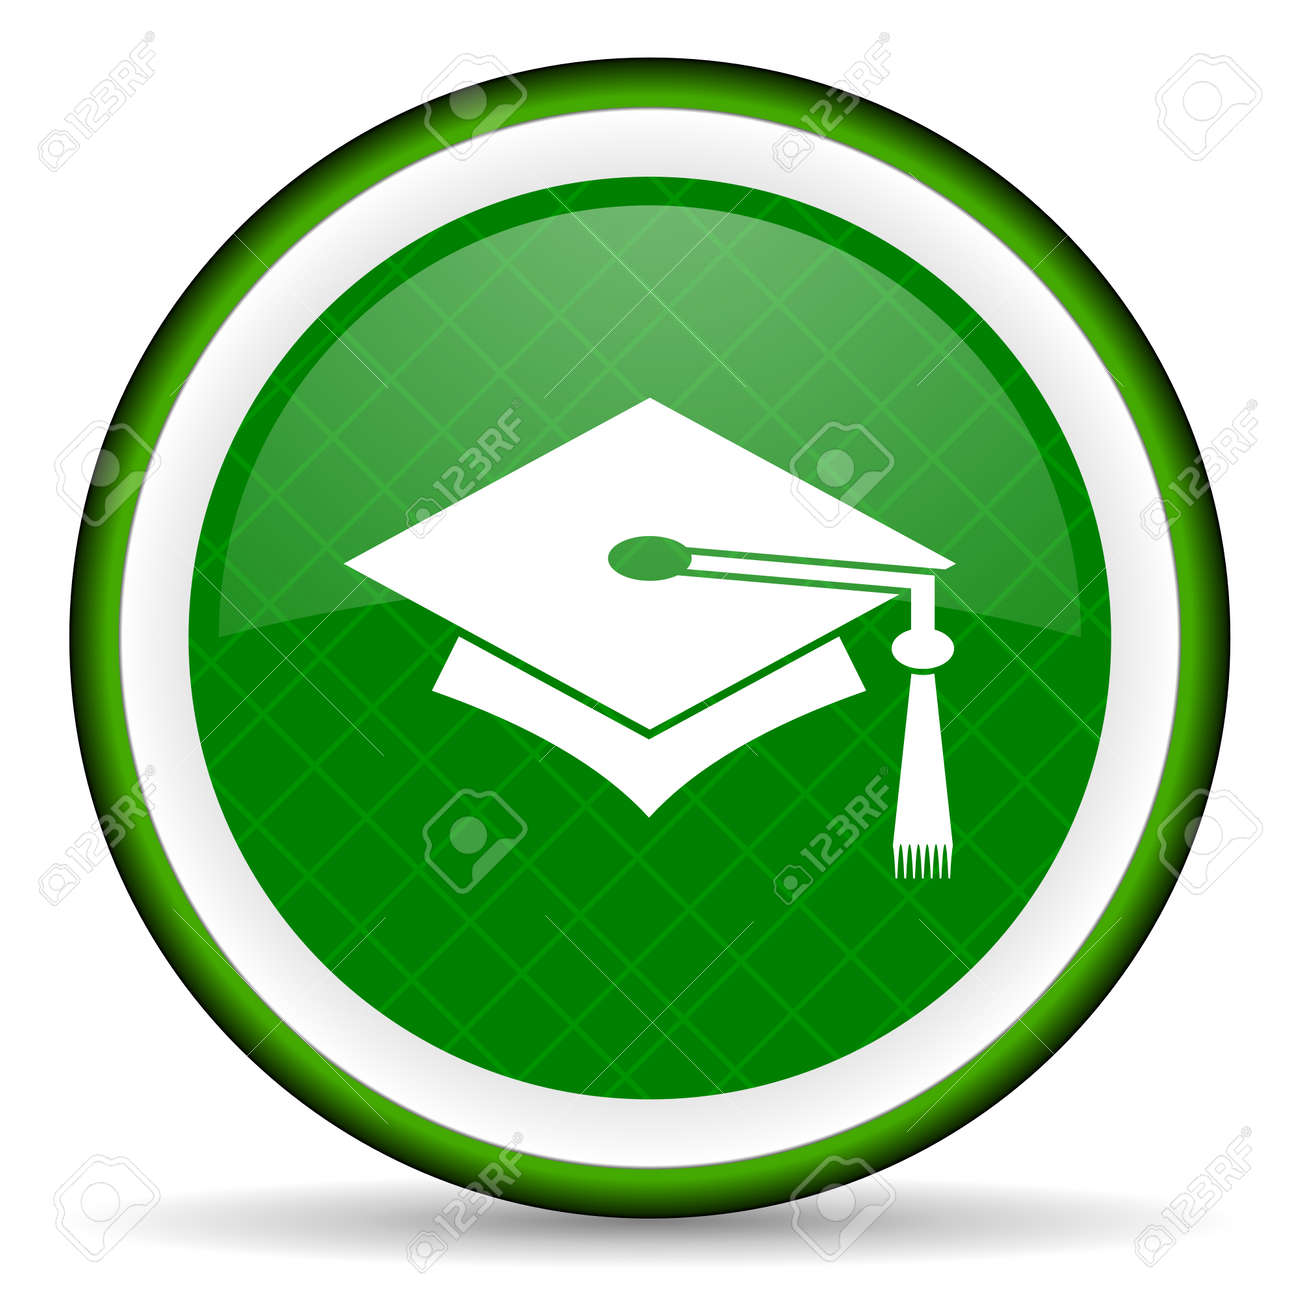 education green icon graduation sign stock photo picture and